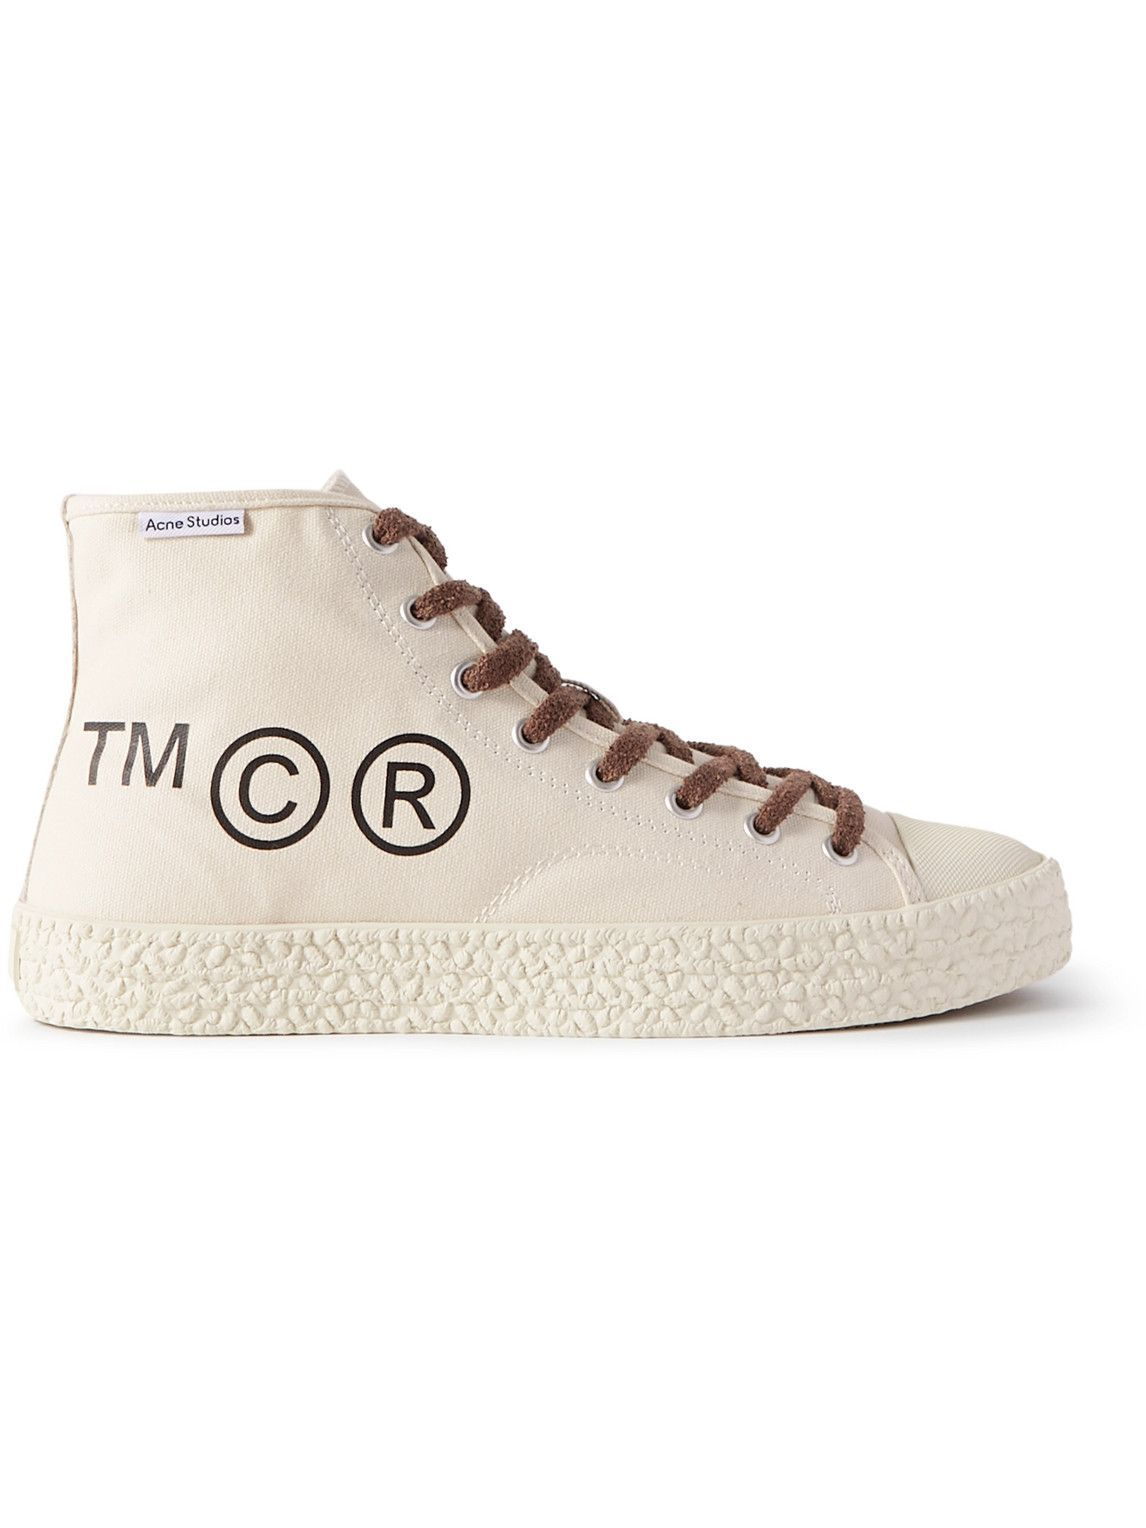 Photo: Acne Studios - Printed Cotton-Canvas High-Top Sneakers - Neutrals